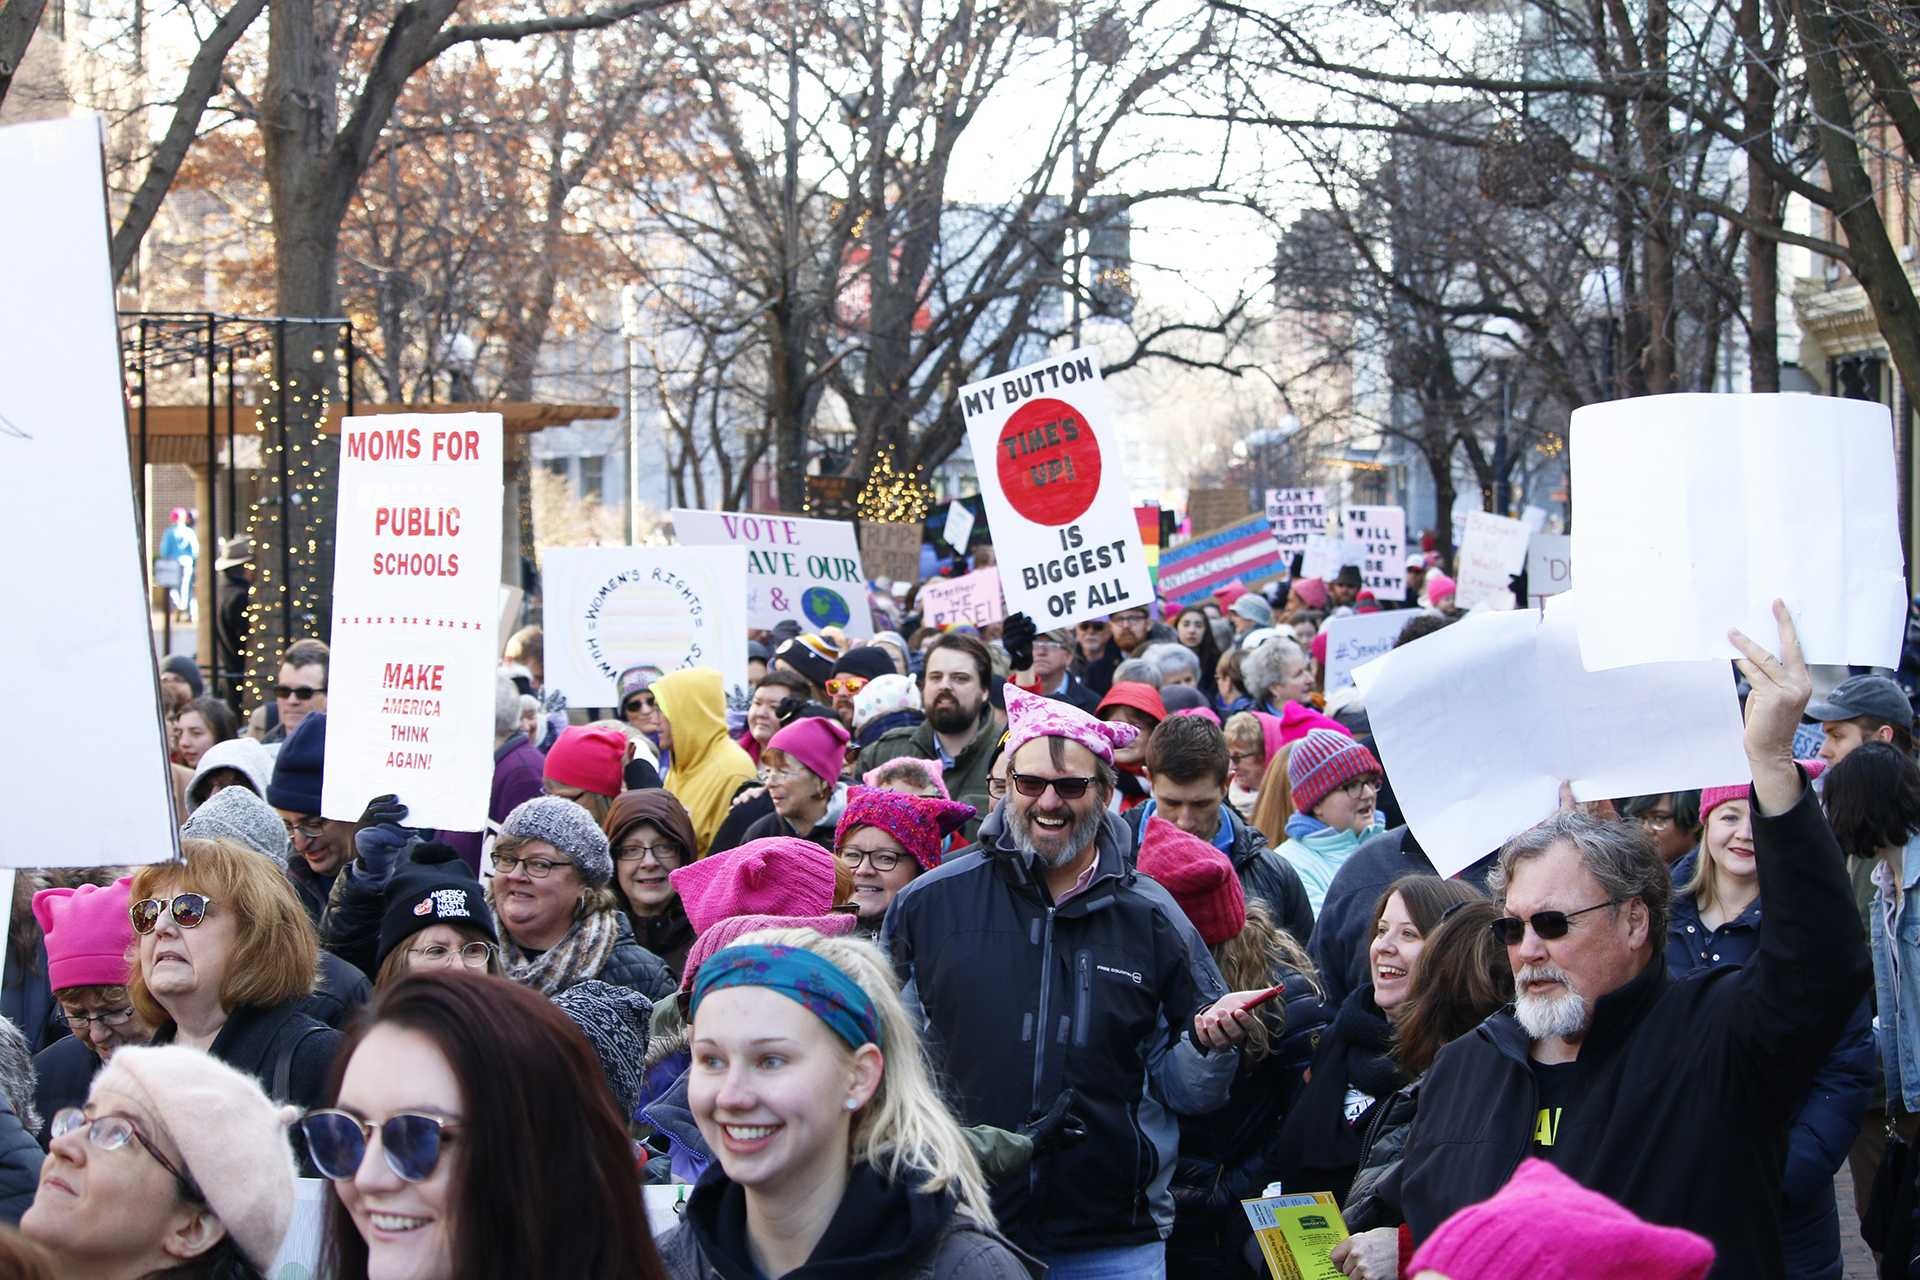 Protesters gather during the Women's March on January 20, 2018. Protesters gathered at the Ped Mall listen to speakers and march for female empowerment. (Katina Zentz/The Daily Iowan)